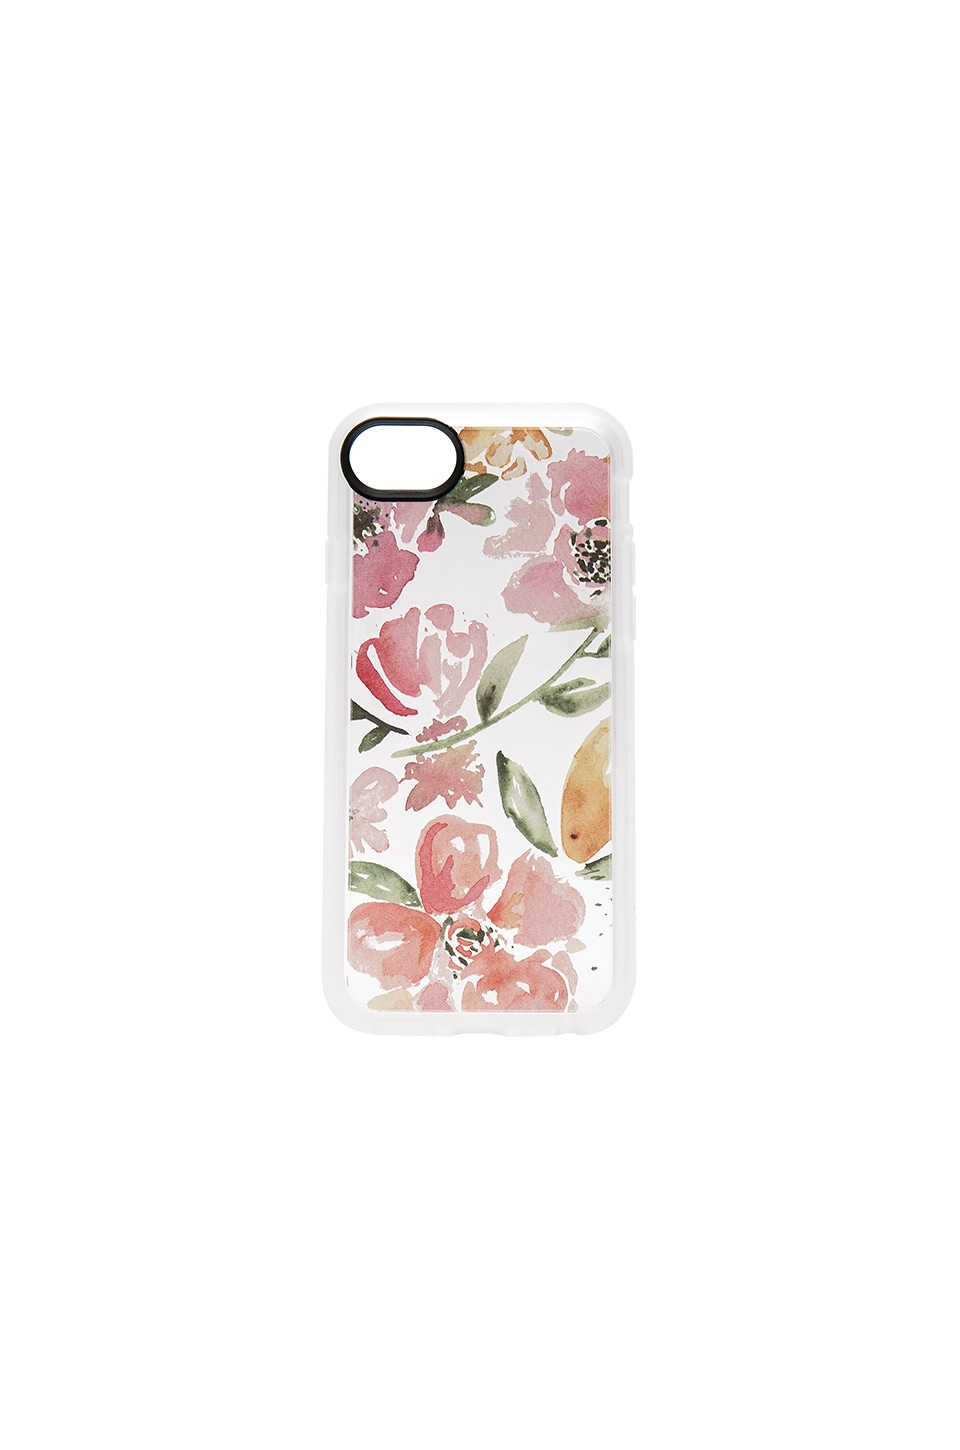 Casetify Floral Pink Gray iPhone 7 Case in Clear